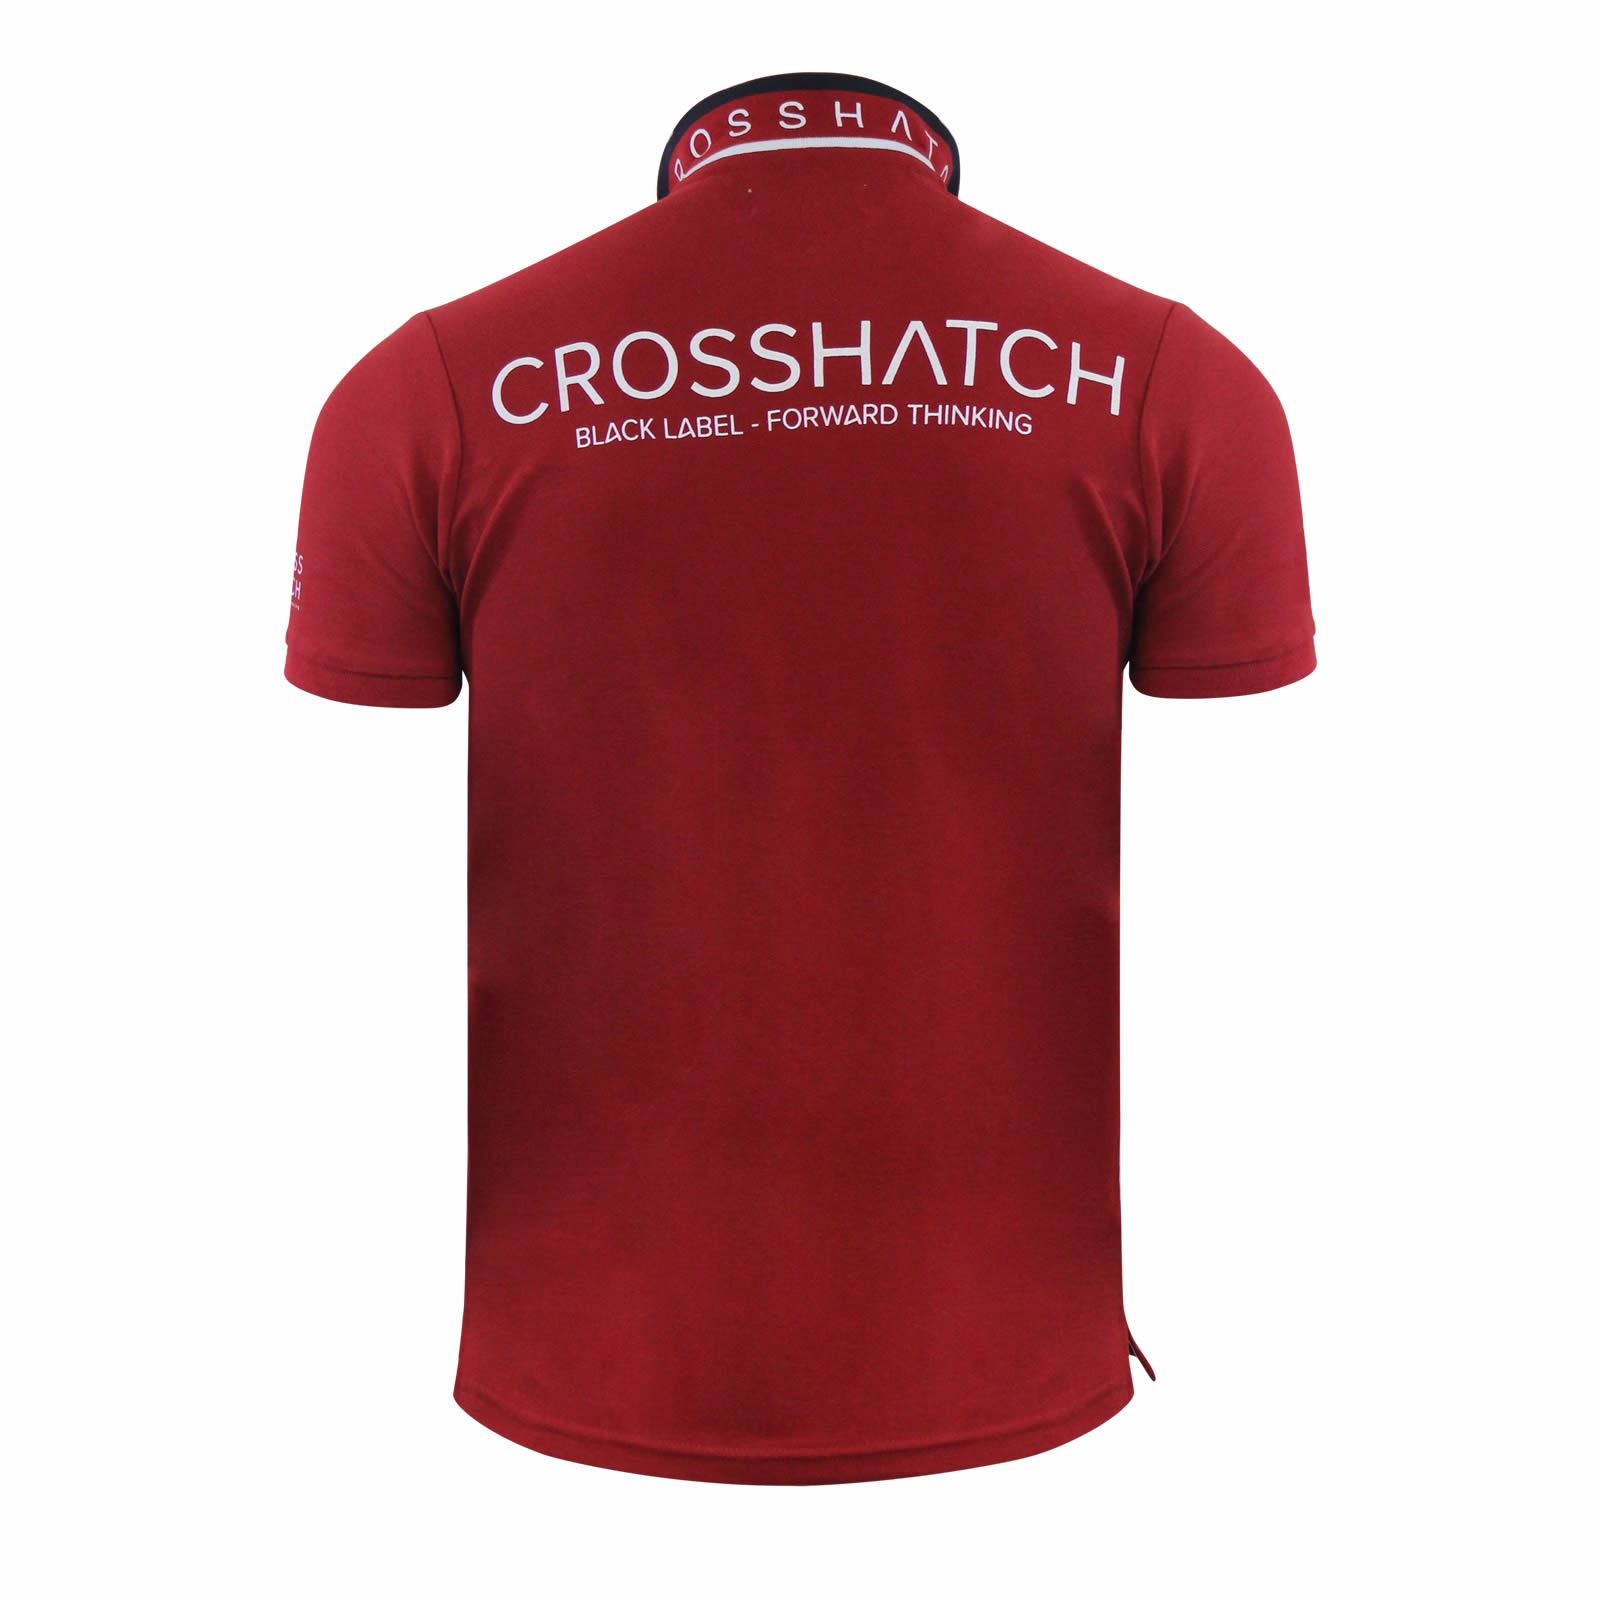 Mens-Polo-T-Shirt-Crosshatch-Evangels-Collared-Cotton-Short-Sleeve-Casual-Top thumbnail 12